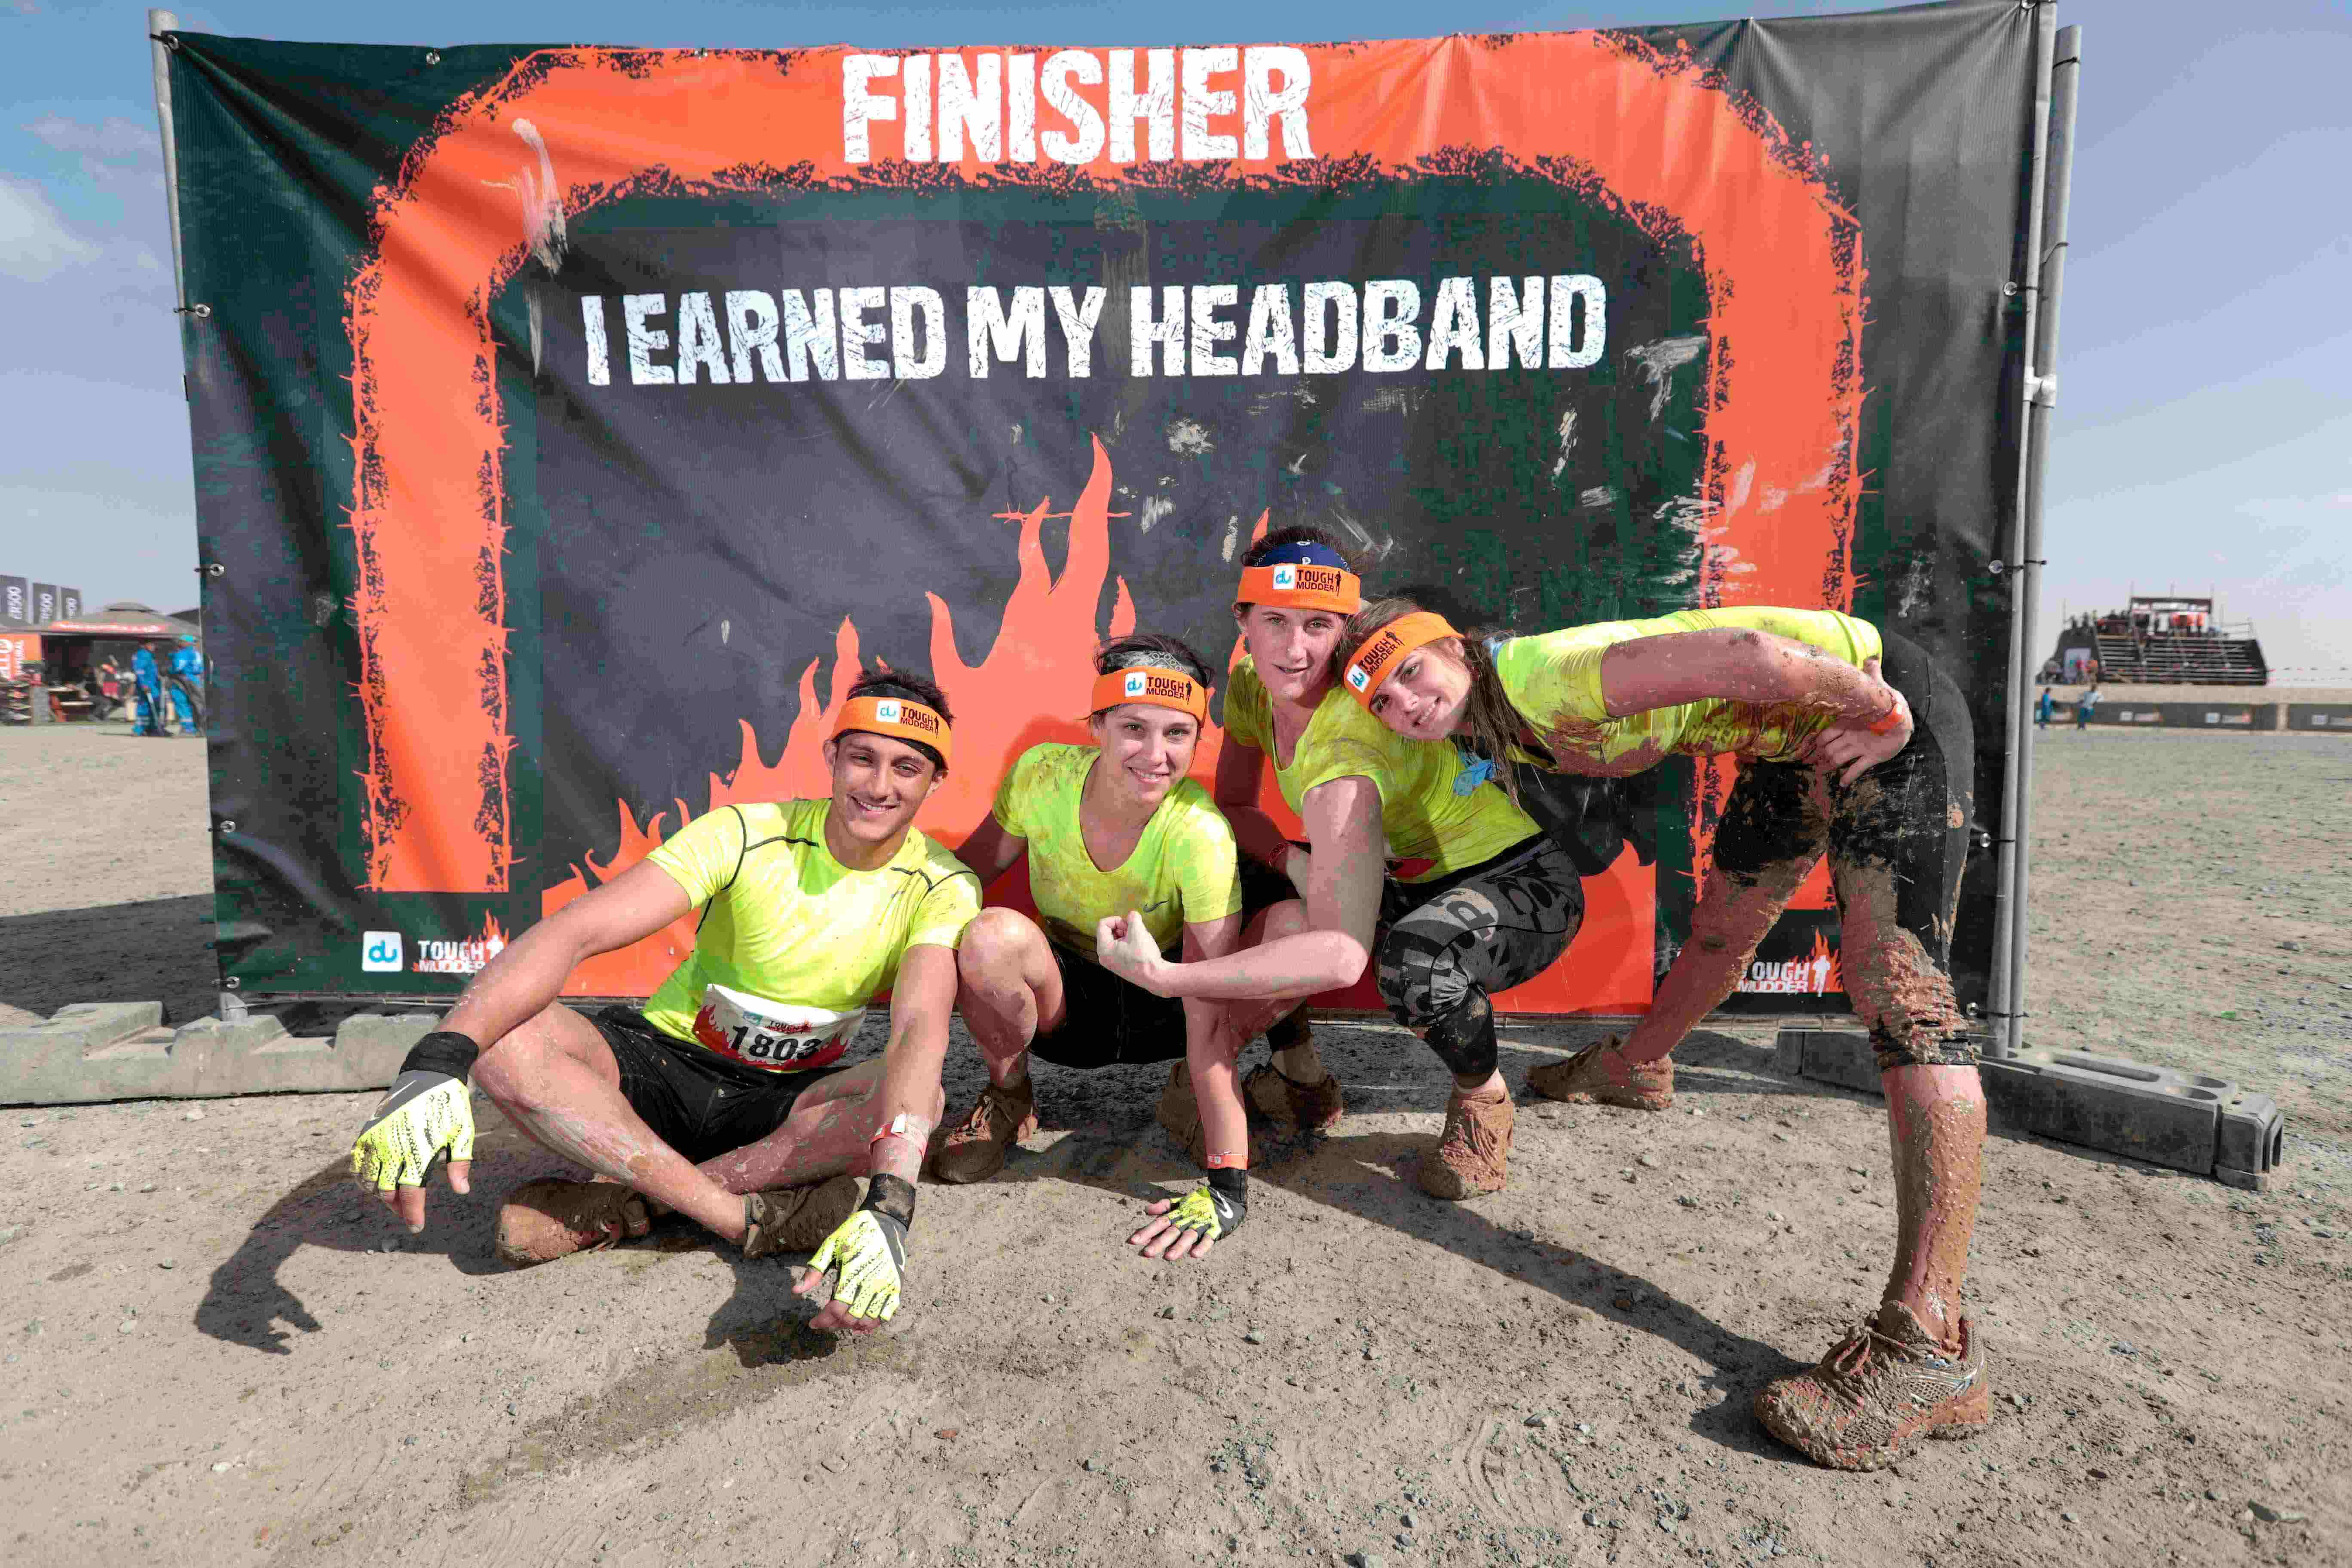 dubai-welcomes-more-than-5000-mudders-to-the-global-community-at-du-tough-mudder-1